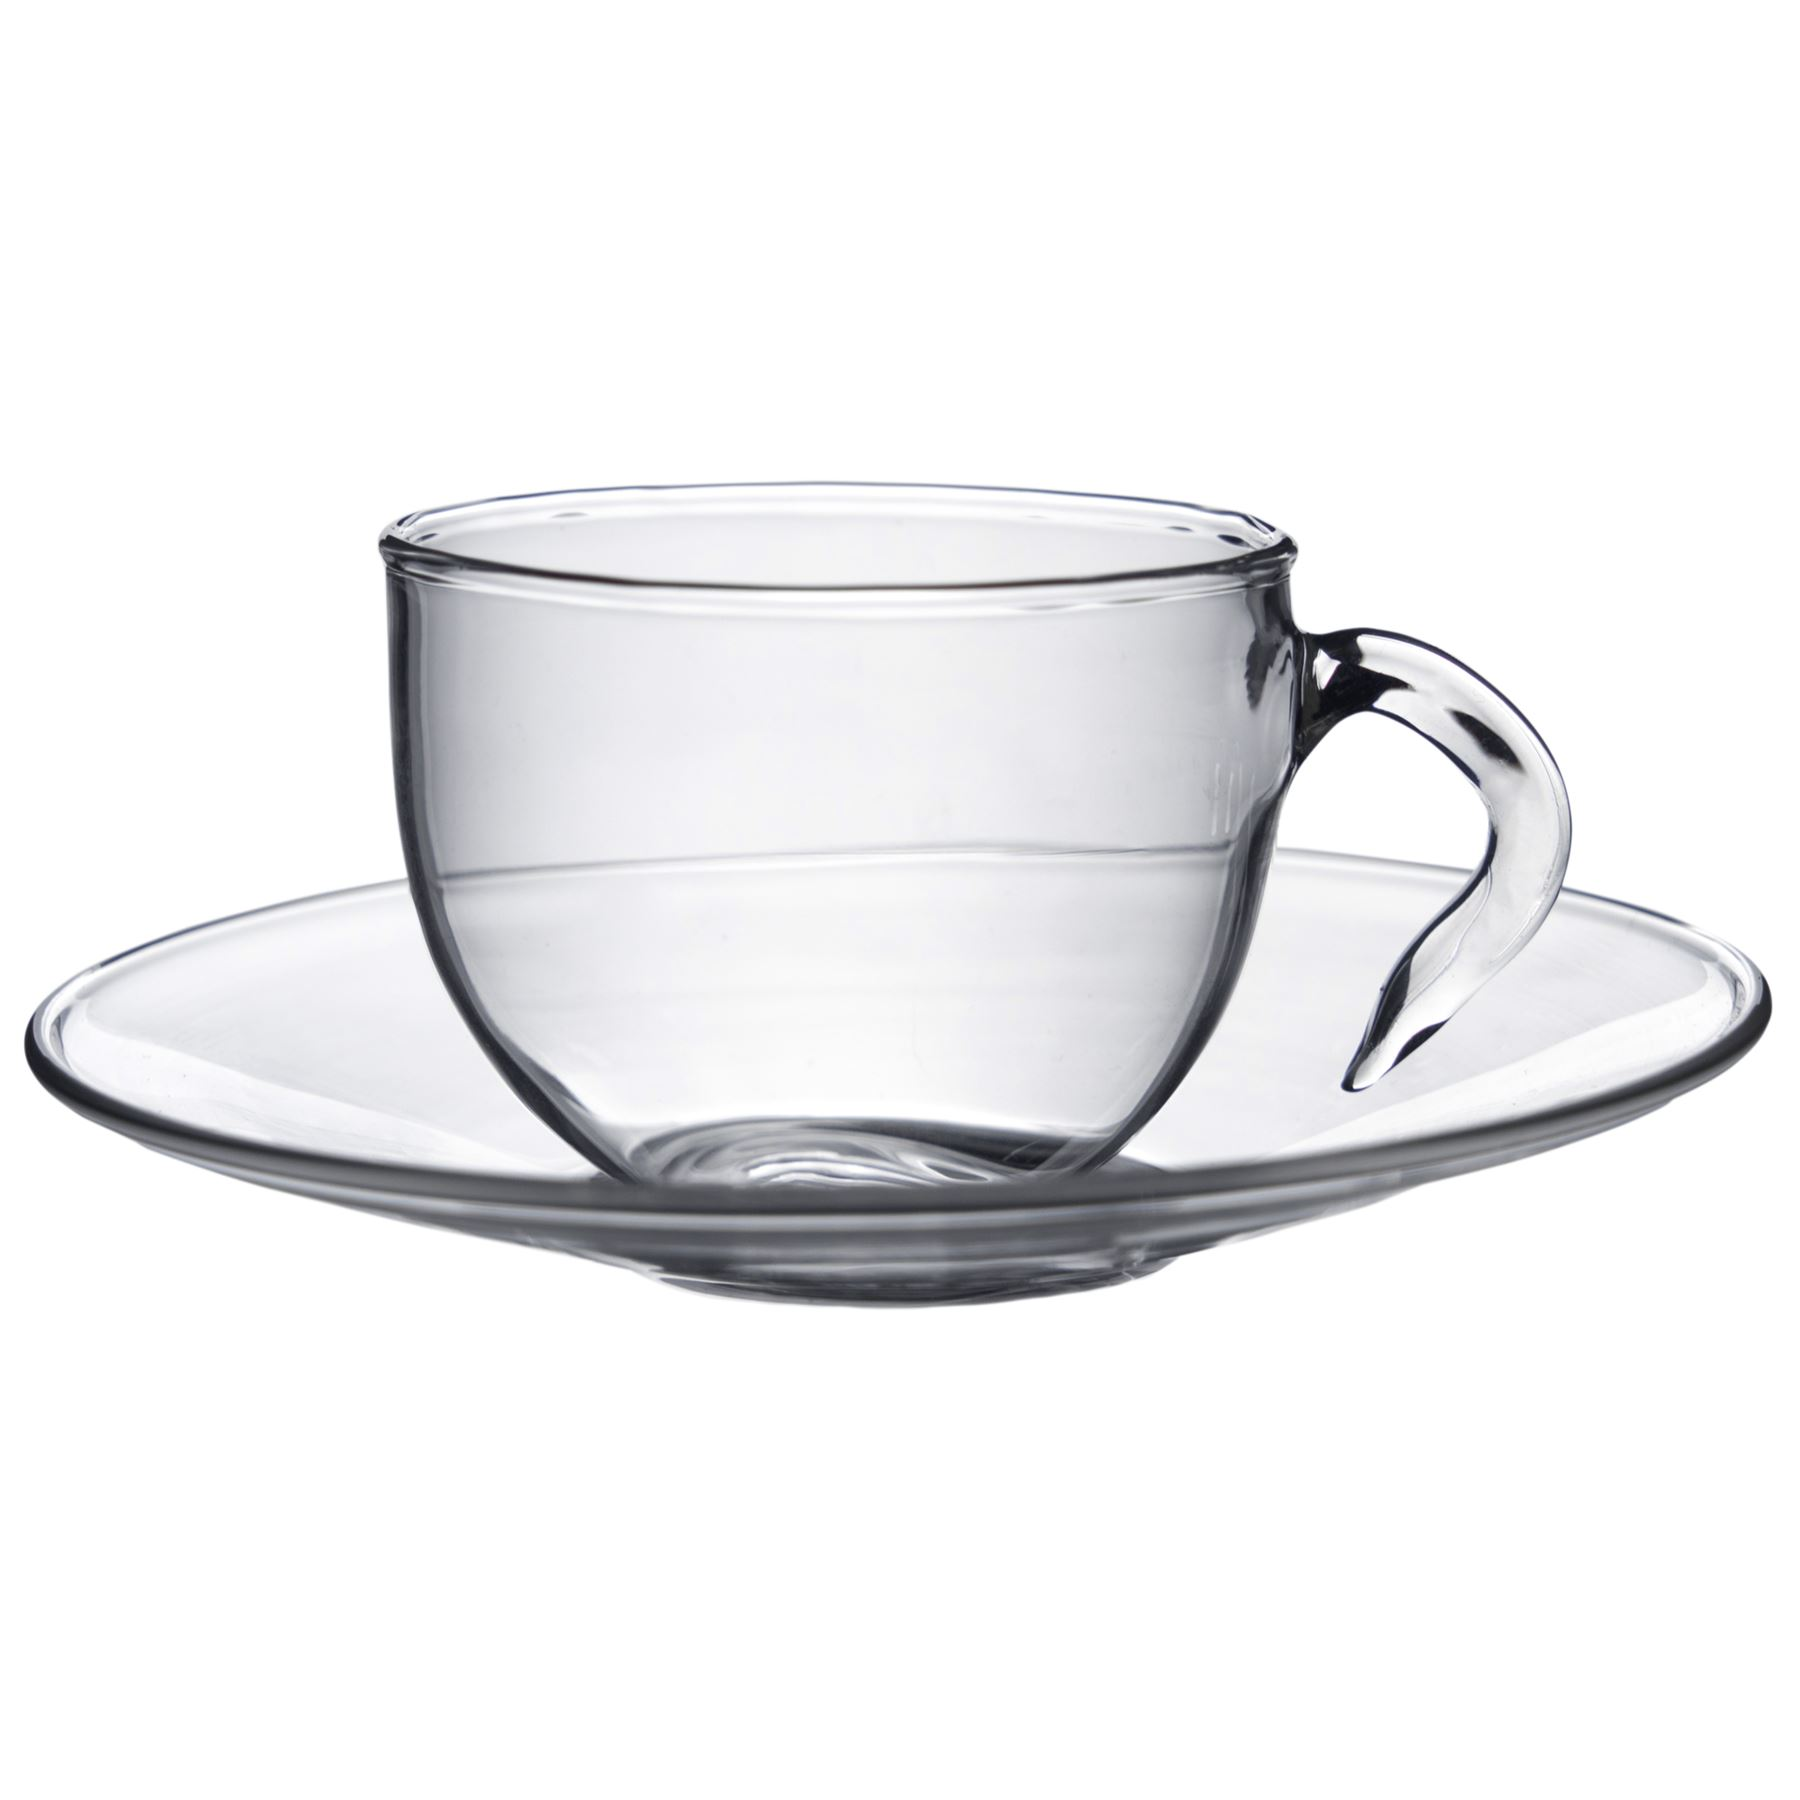 Glass Espresso Coffee Cups Cup & Saucer Serving Set - 60ml ...